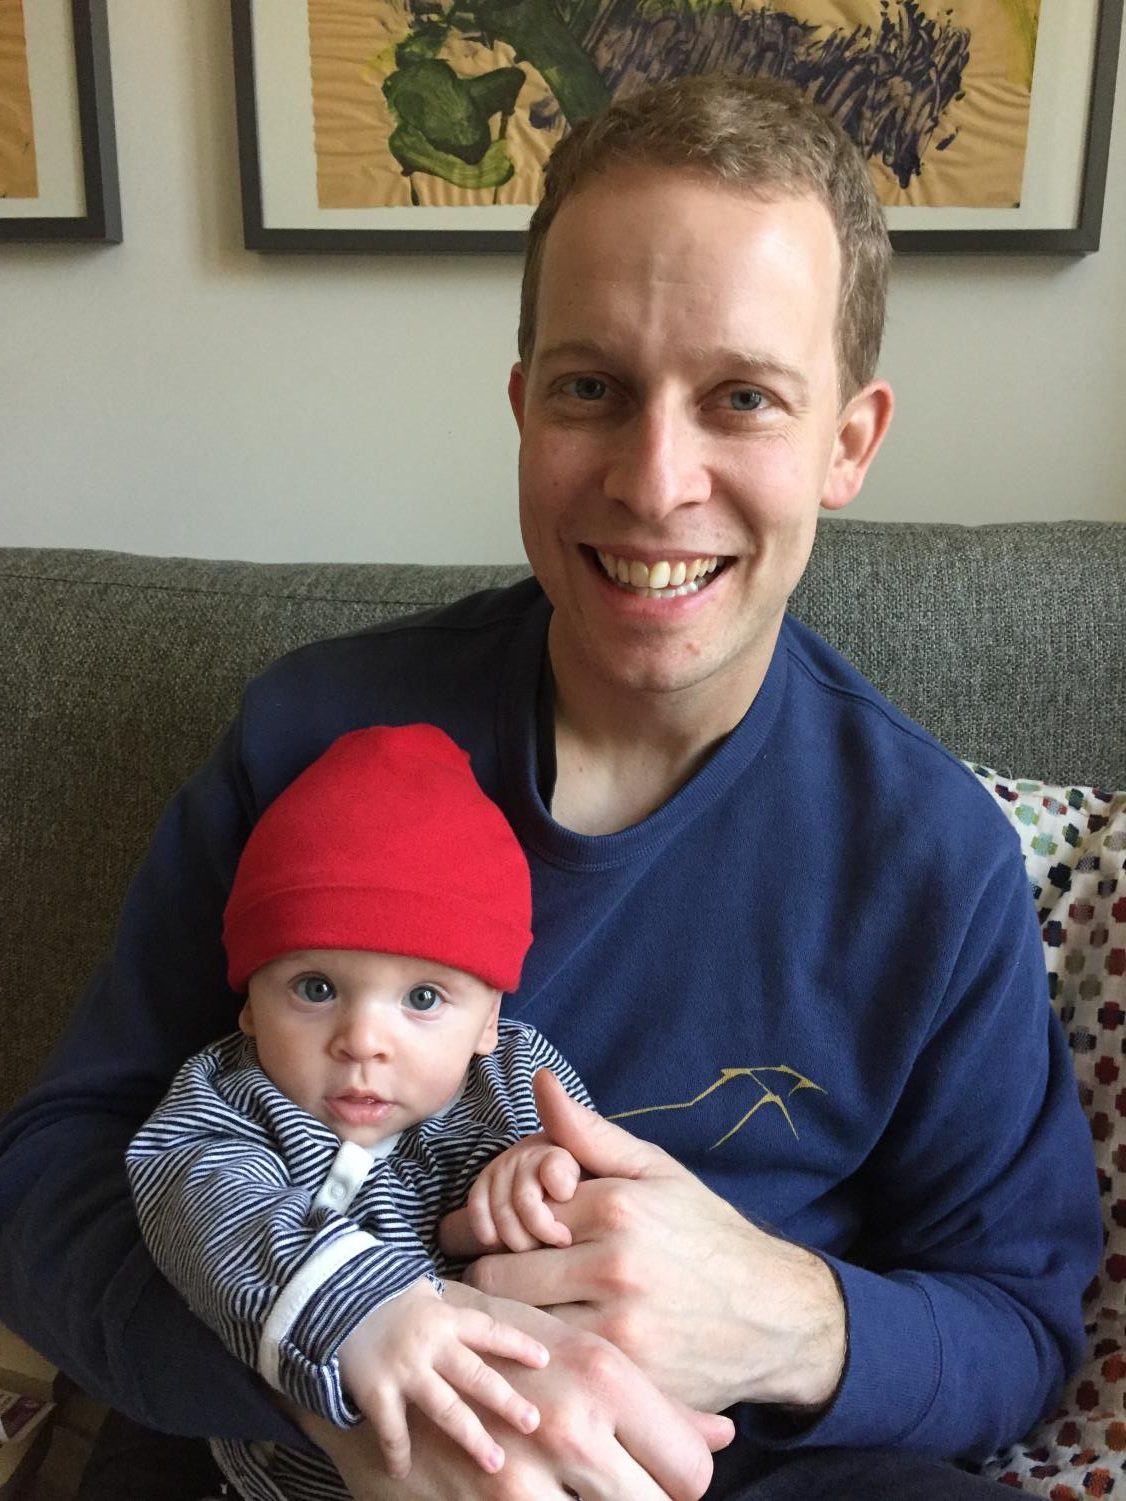 Darren Wood sits at home with his newborn son, Owen.